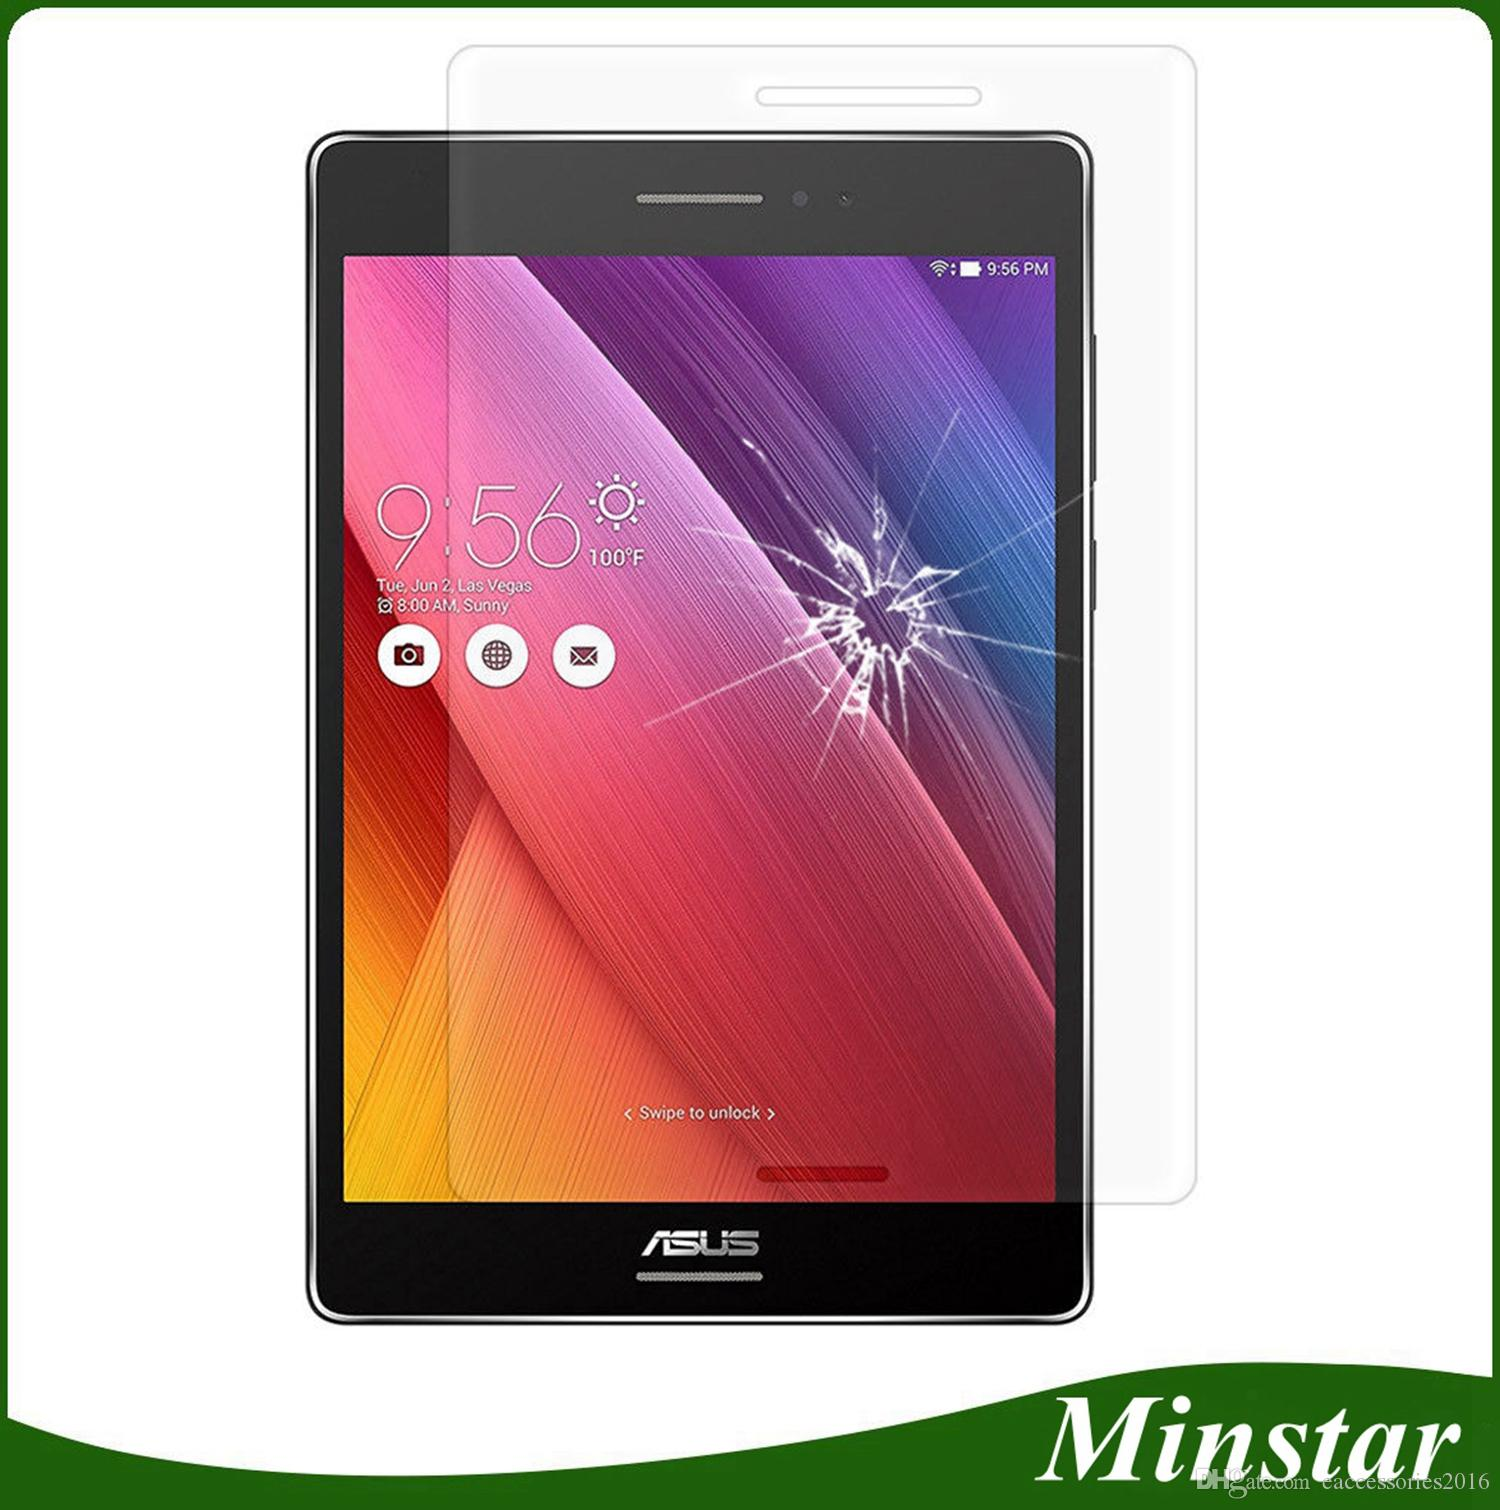 For Asus Zen Pad C Z170mg 7 0 Zenpad Z171 7 0 Inch Front Cover Tablet Tempered Glass Anti Explosion Guard Screen Protector e Plus e Tempered